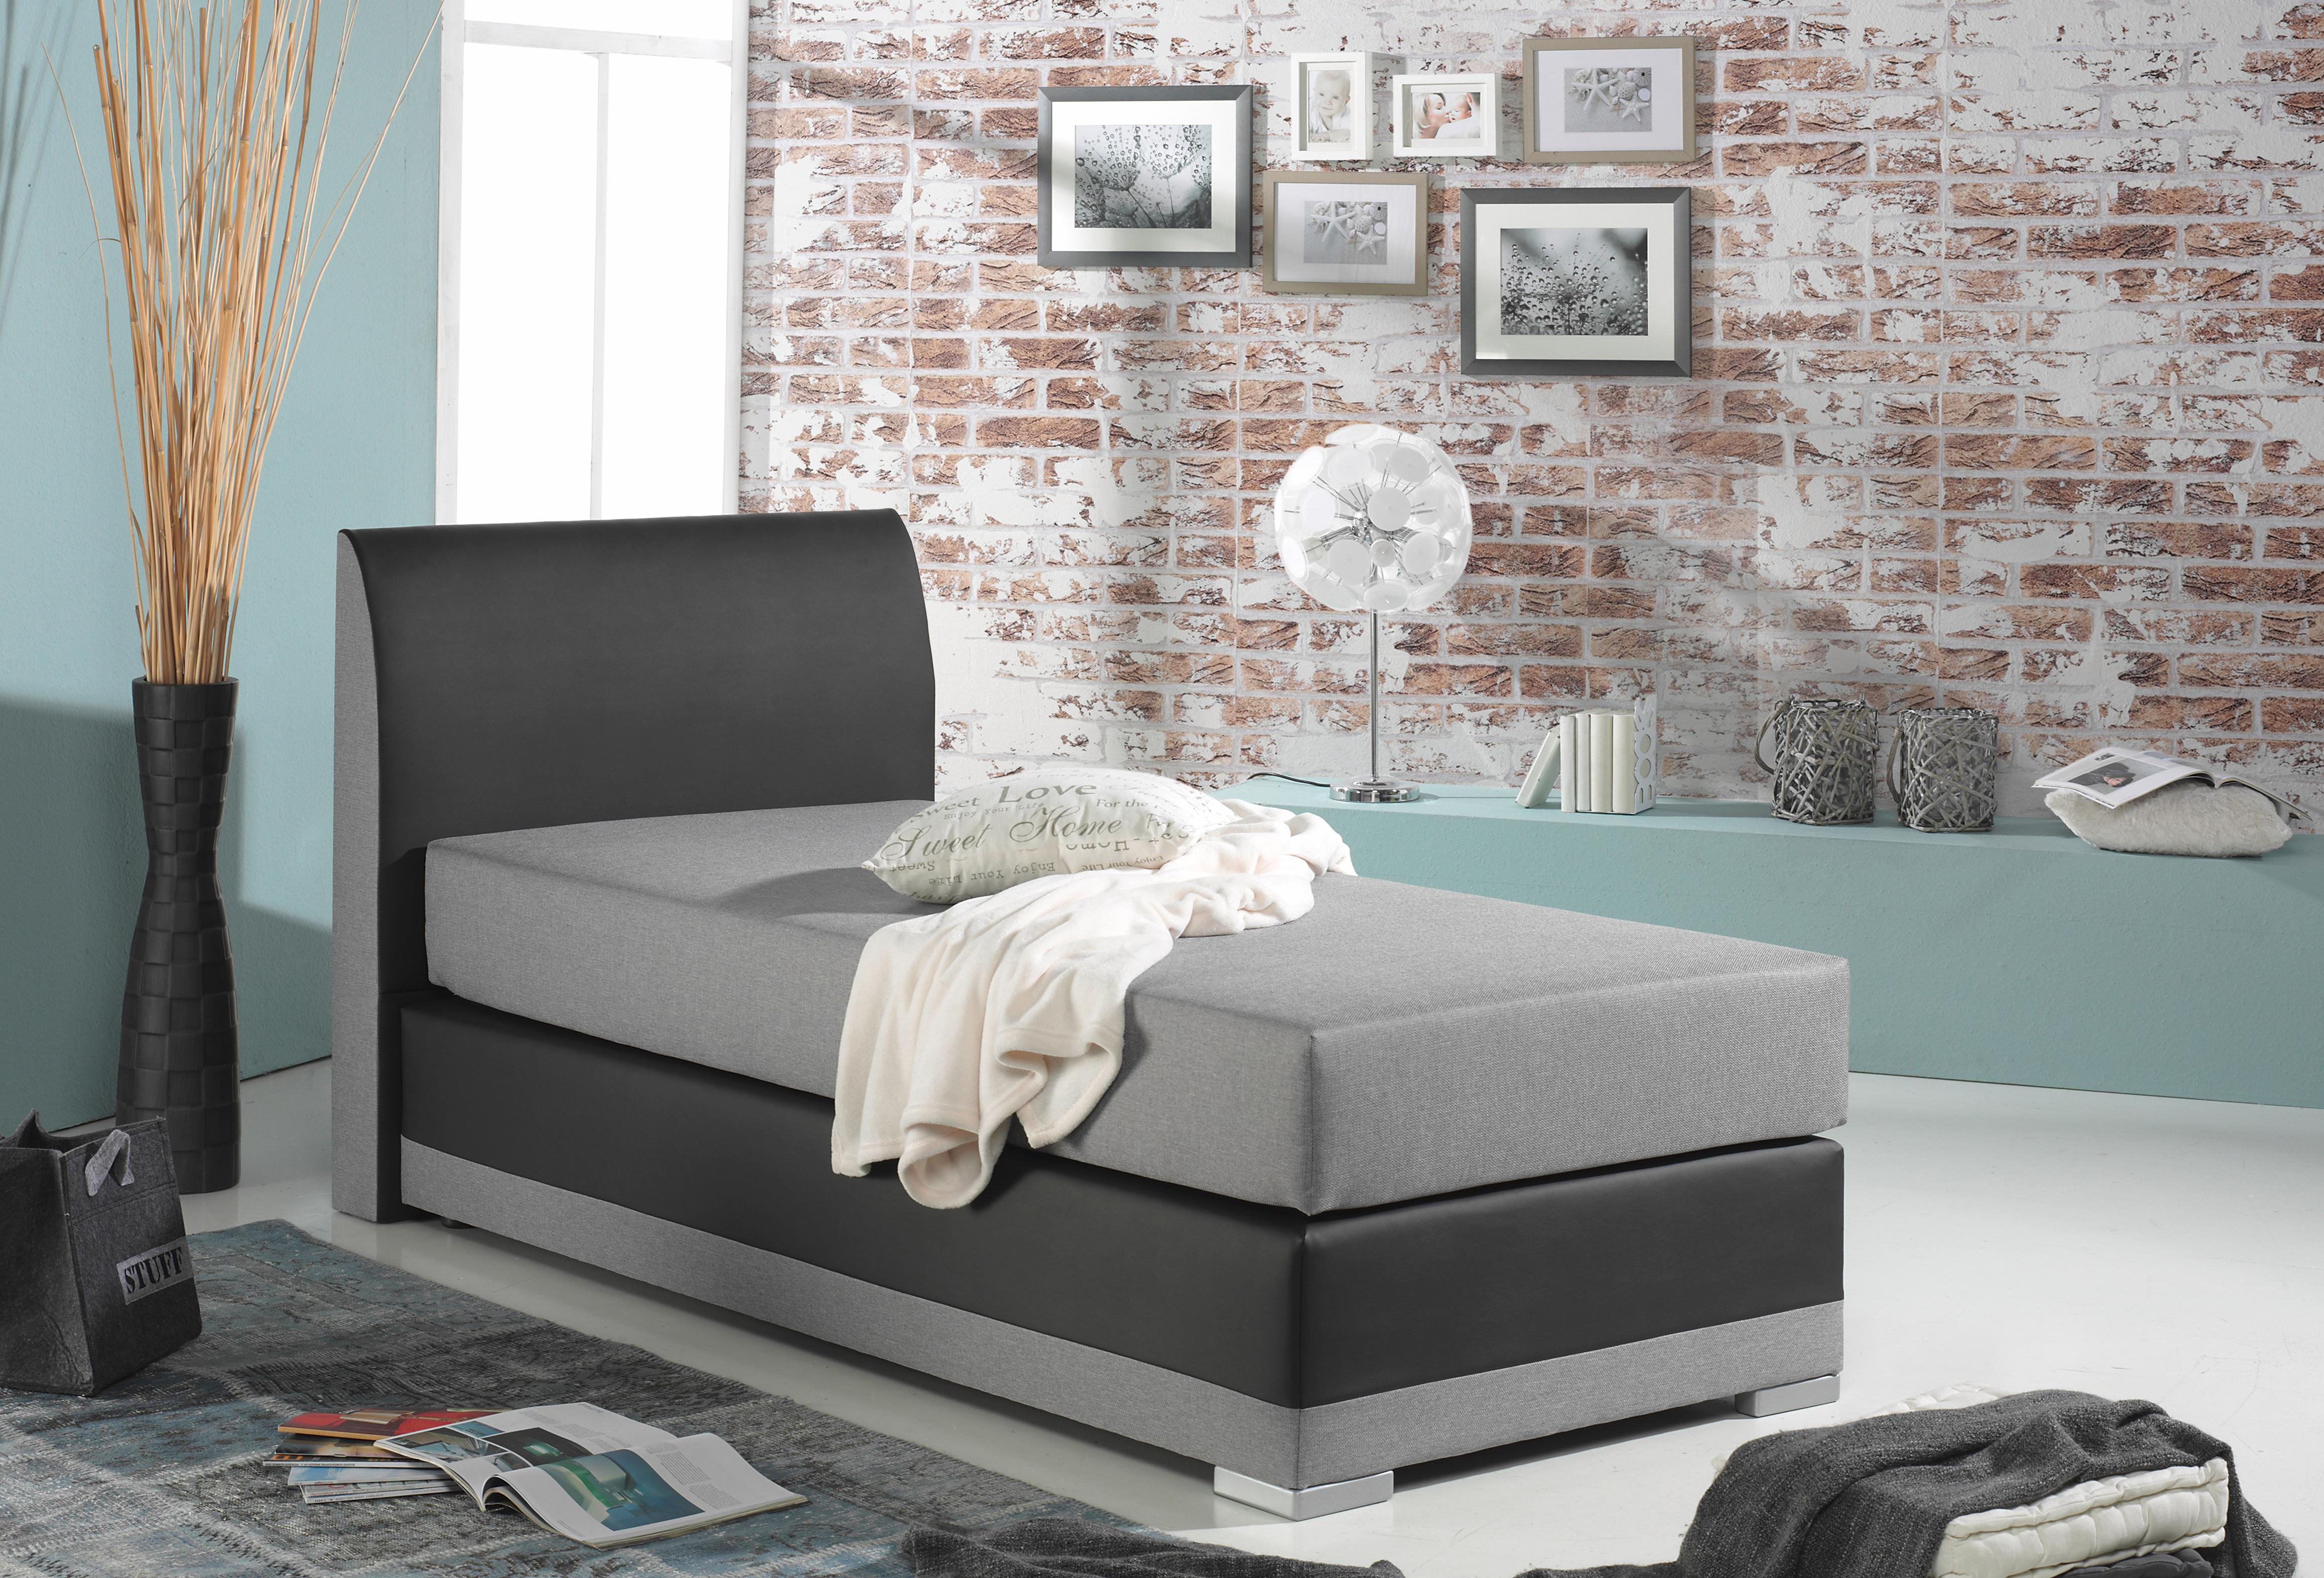 maintal boxspringbett auf rechnung kaufen. Black Bedroom Furniture Sets. Home Design Ideas